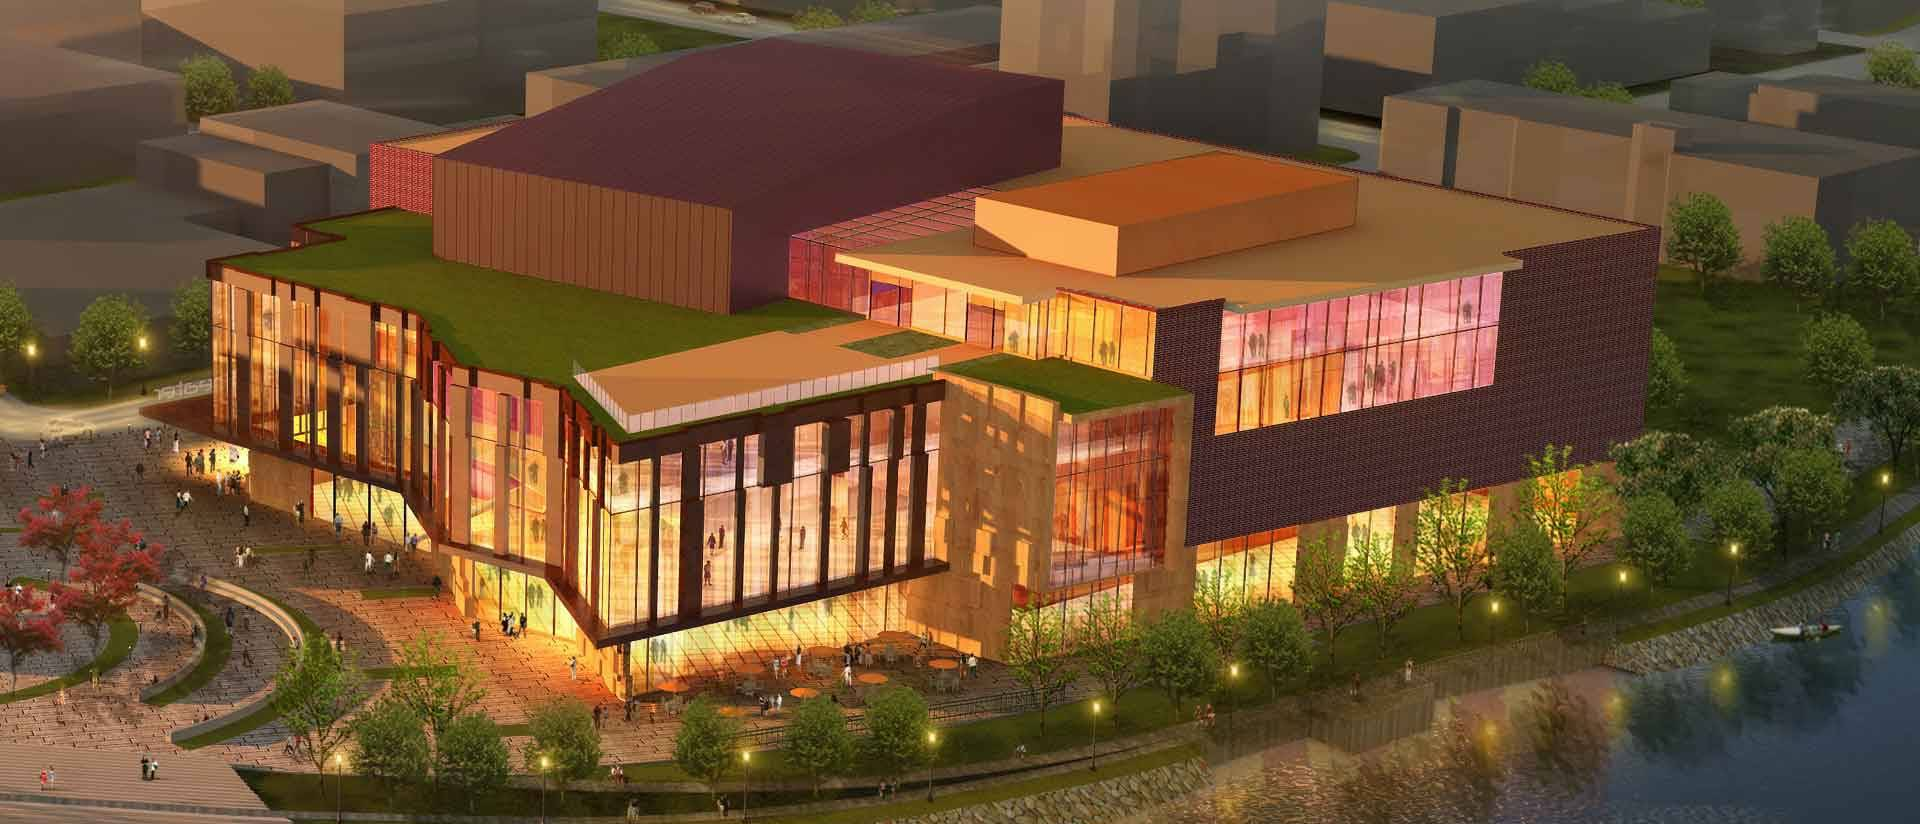 Initial artist's rendering of Confluence Arts Center